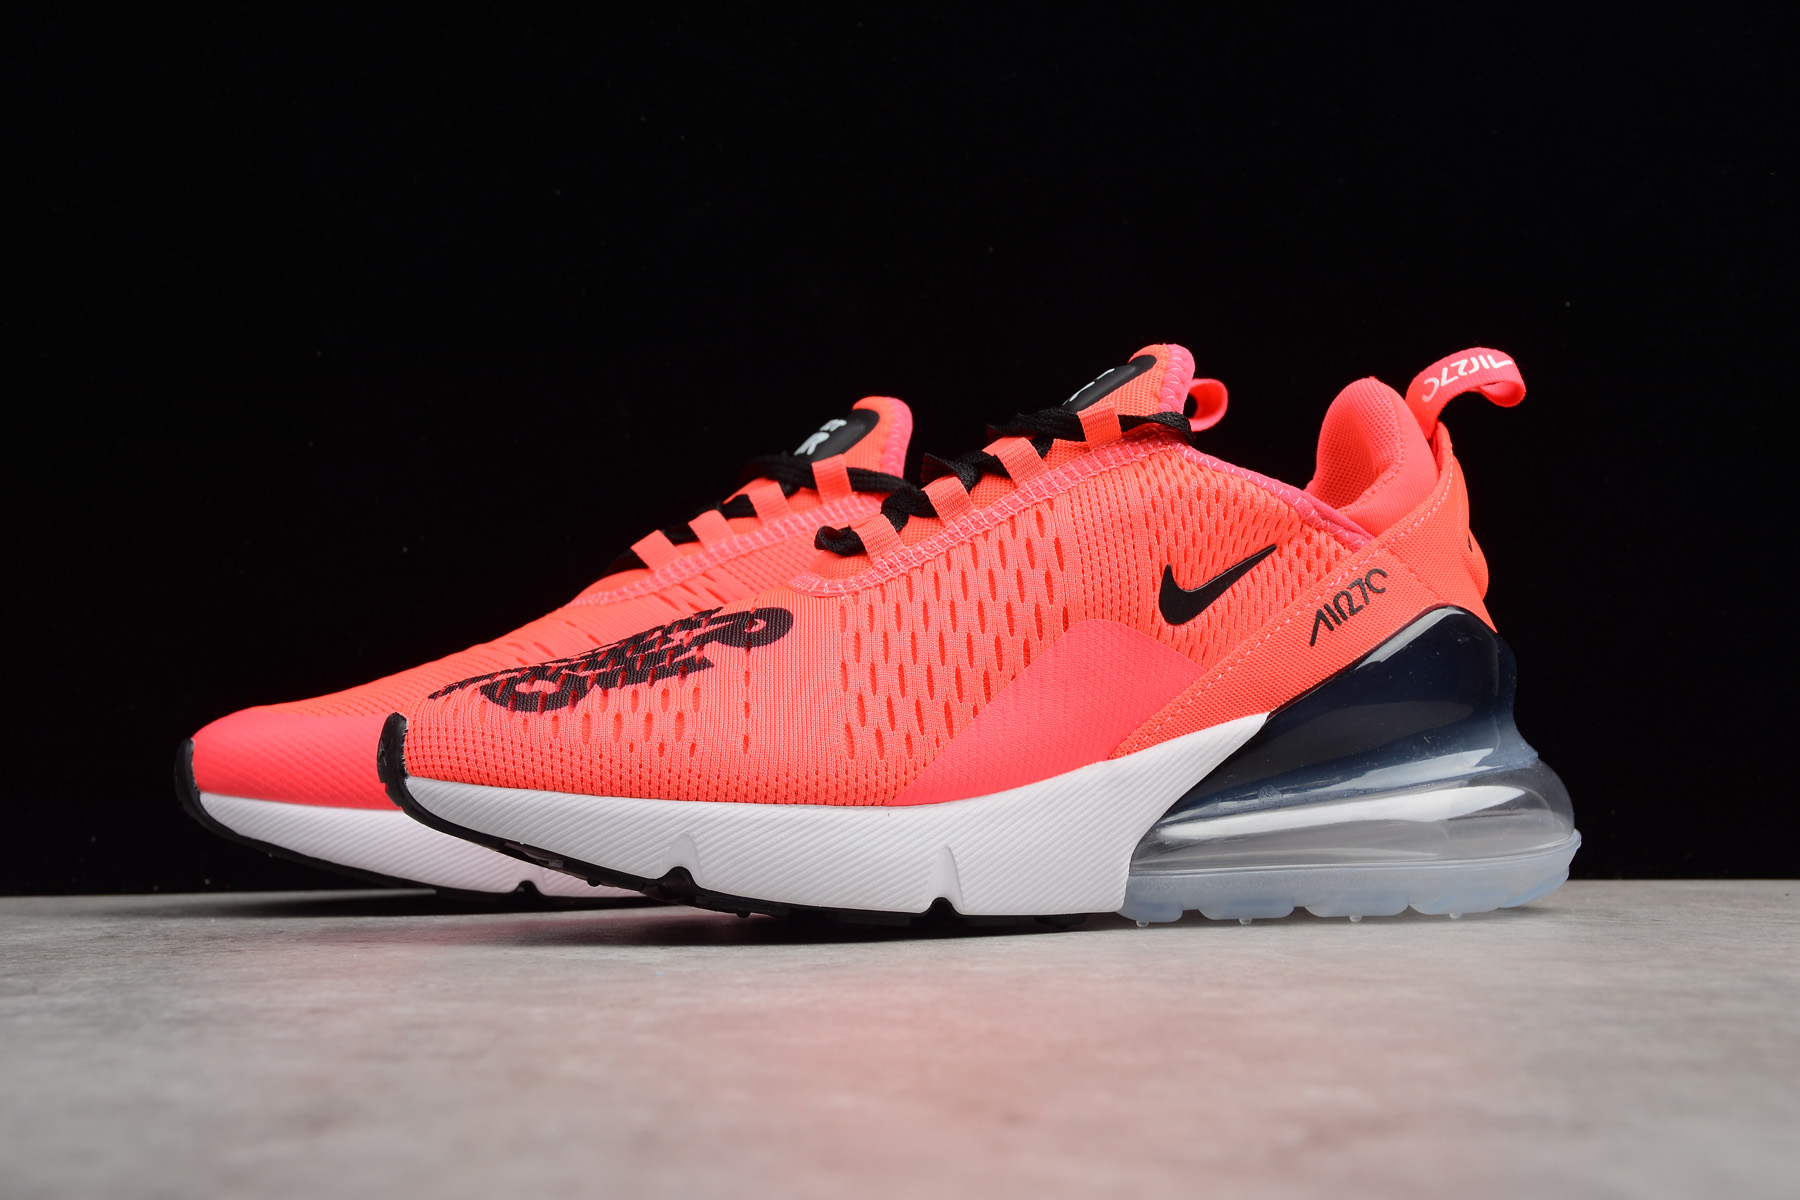 outlet store c6a7f 71df7 NIKEiD Air Max 270 Hyper Pink/Black-White Men's and Women's Size BQ0742-996